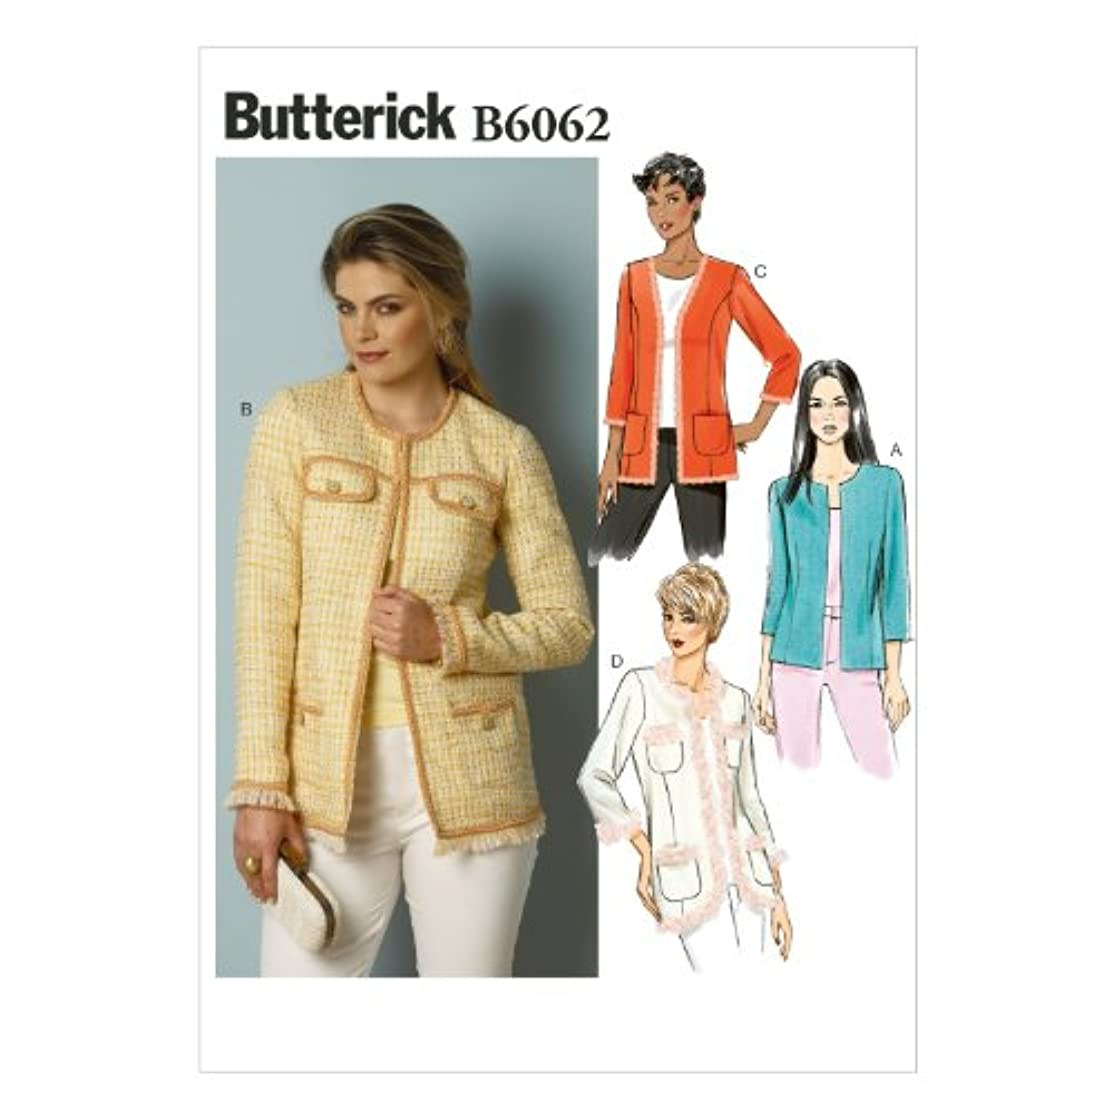 BUTTERICK PATTERNS B6062 Misses' Jacket Sewing Template, Size A5 (6-8-10-12-14)